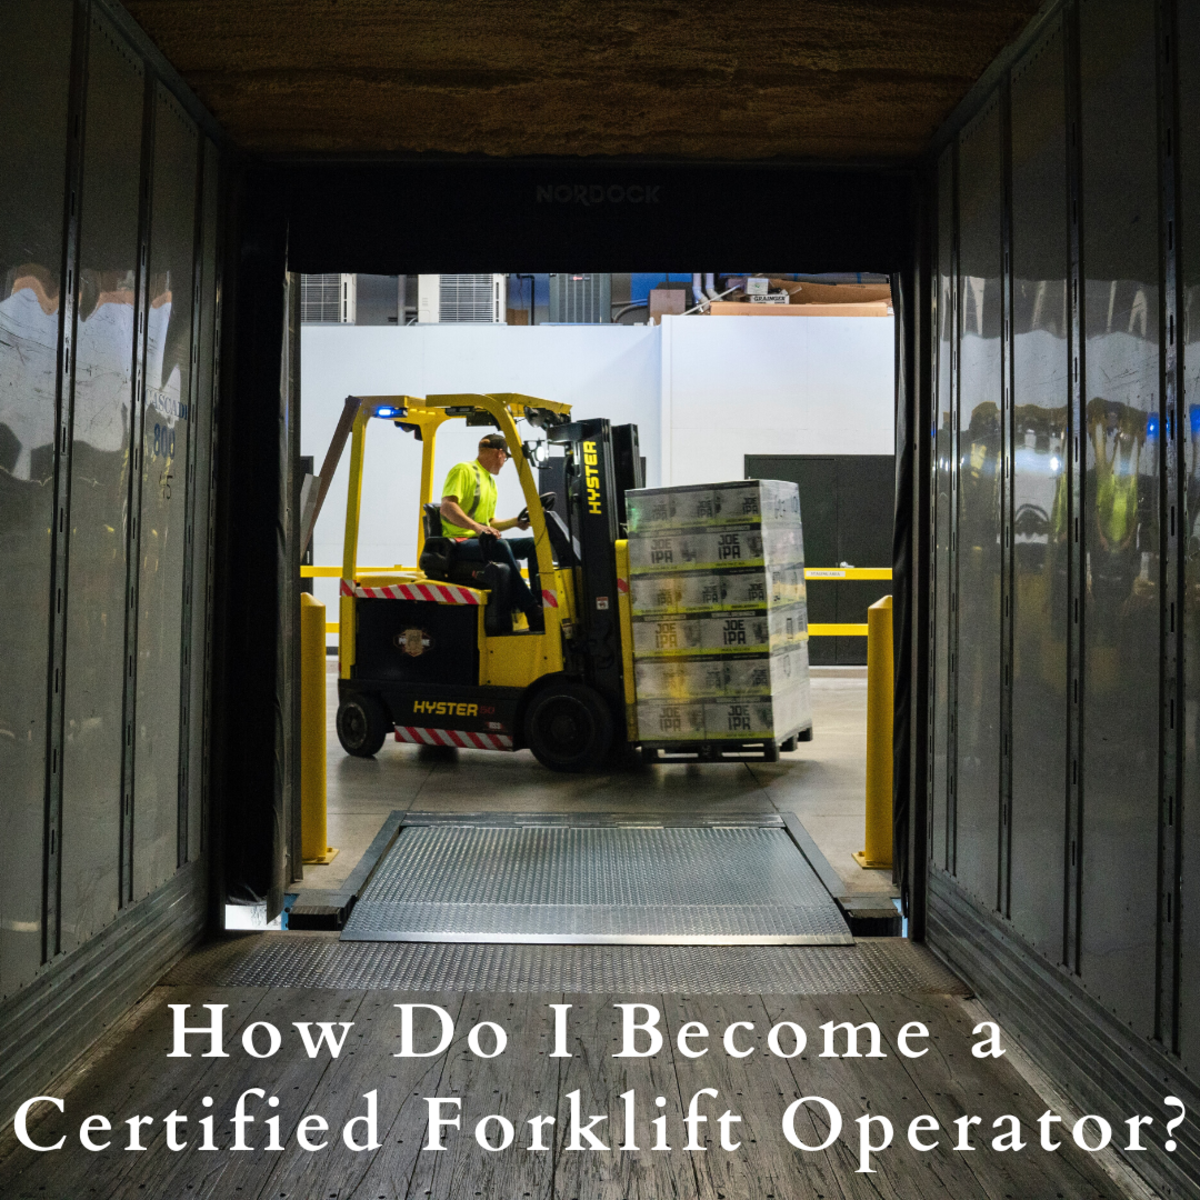 Having a forklift license can help you when looking for a job. Read on to find out how.